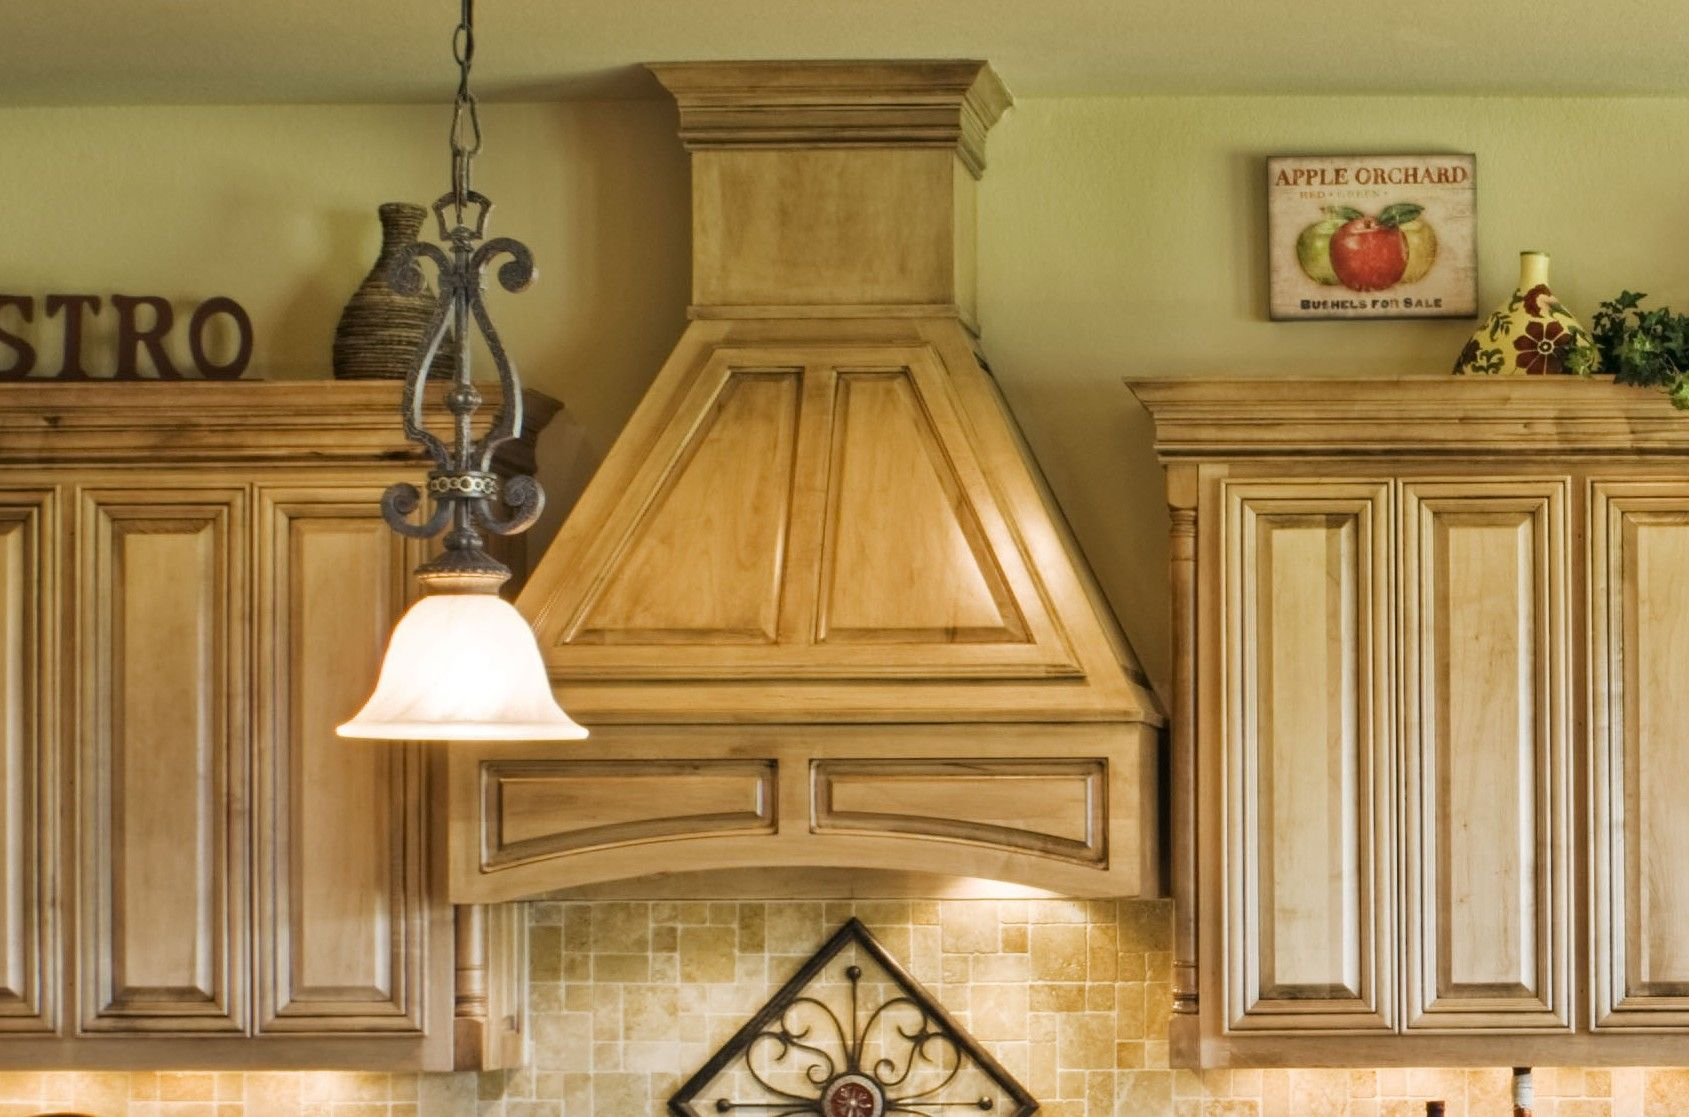 contemporary butcher countertops categorykitchenstylecontemporary accent with black hoods kitchen wall hardware lighting burnt ceiling traditional vent contemporarywith block sienna